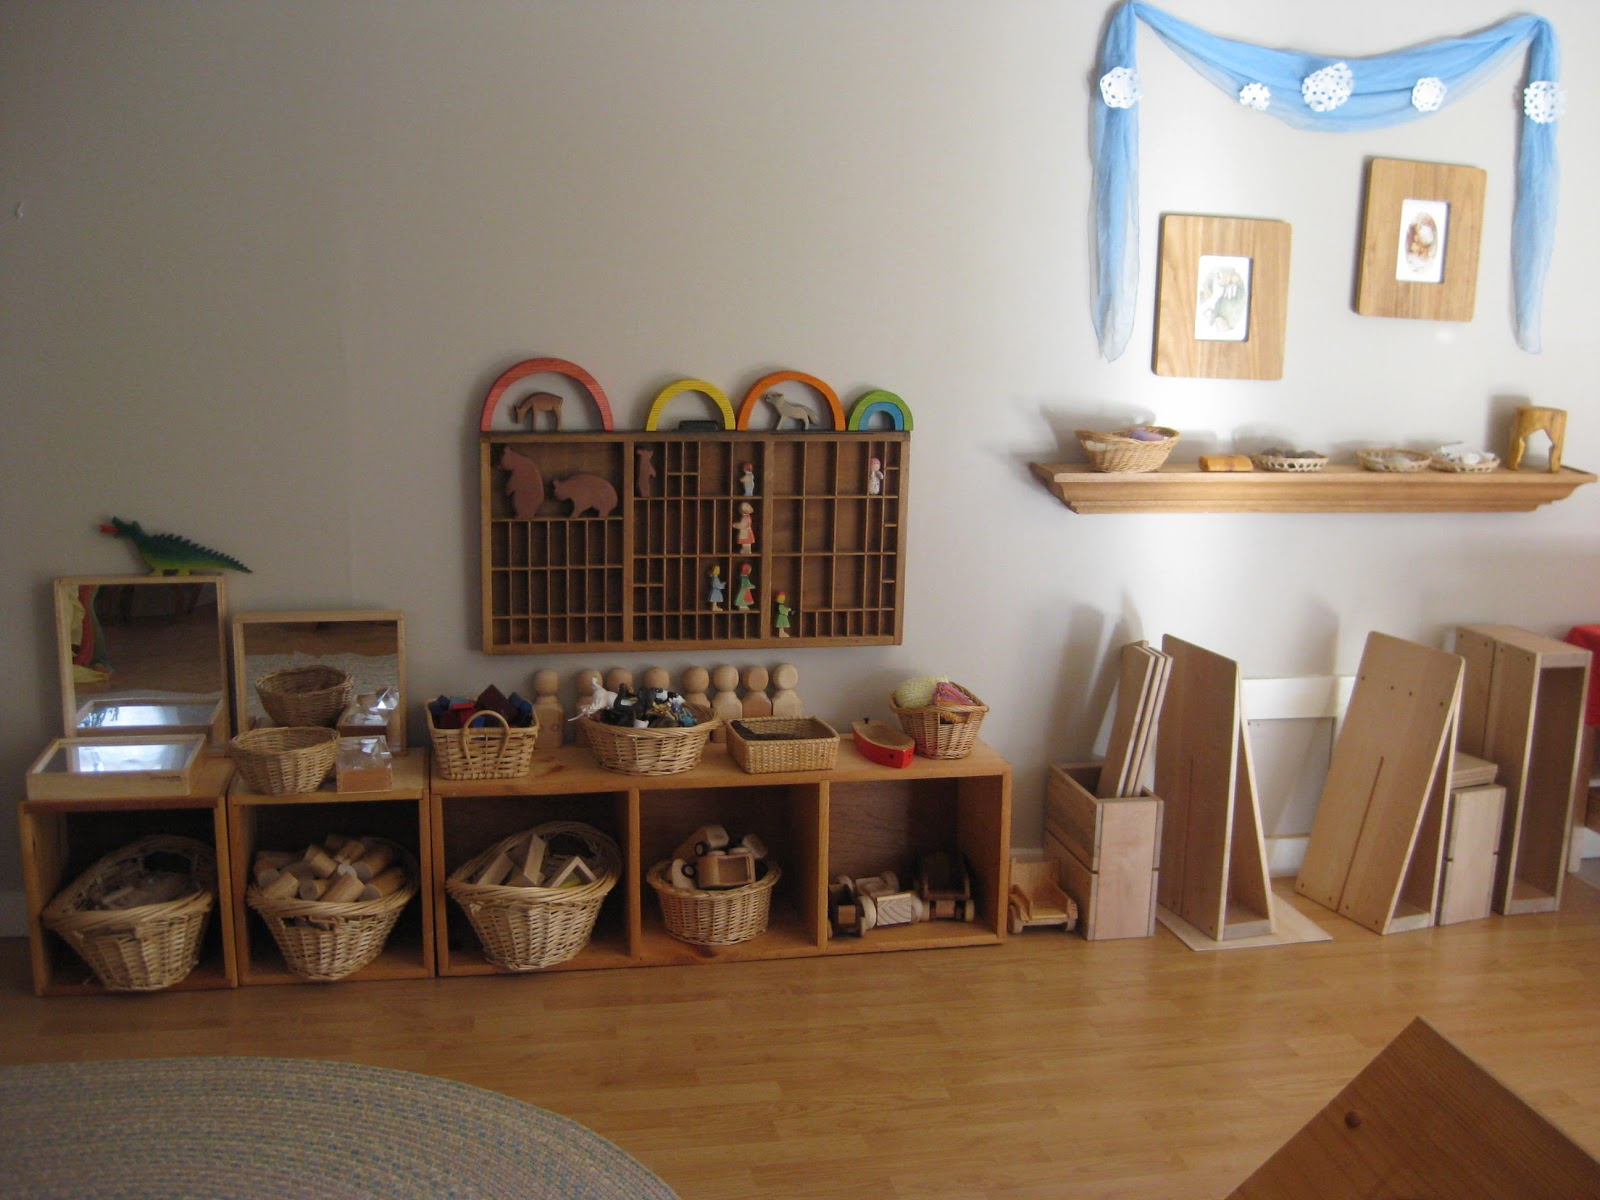 Home Daycare Design Ideas: The Wonder Years: An In-Home Childcare Room